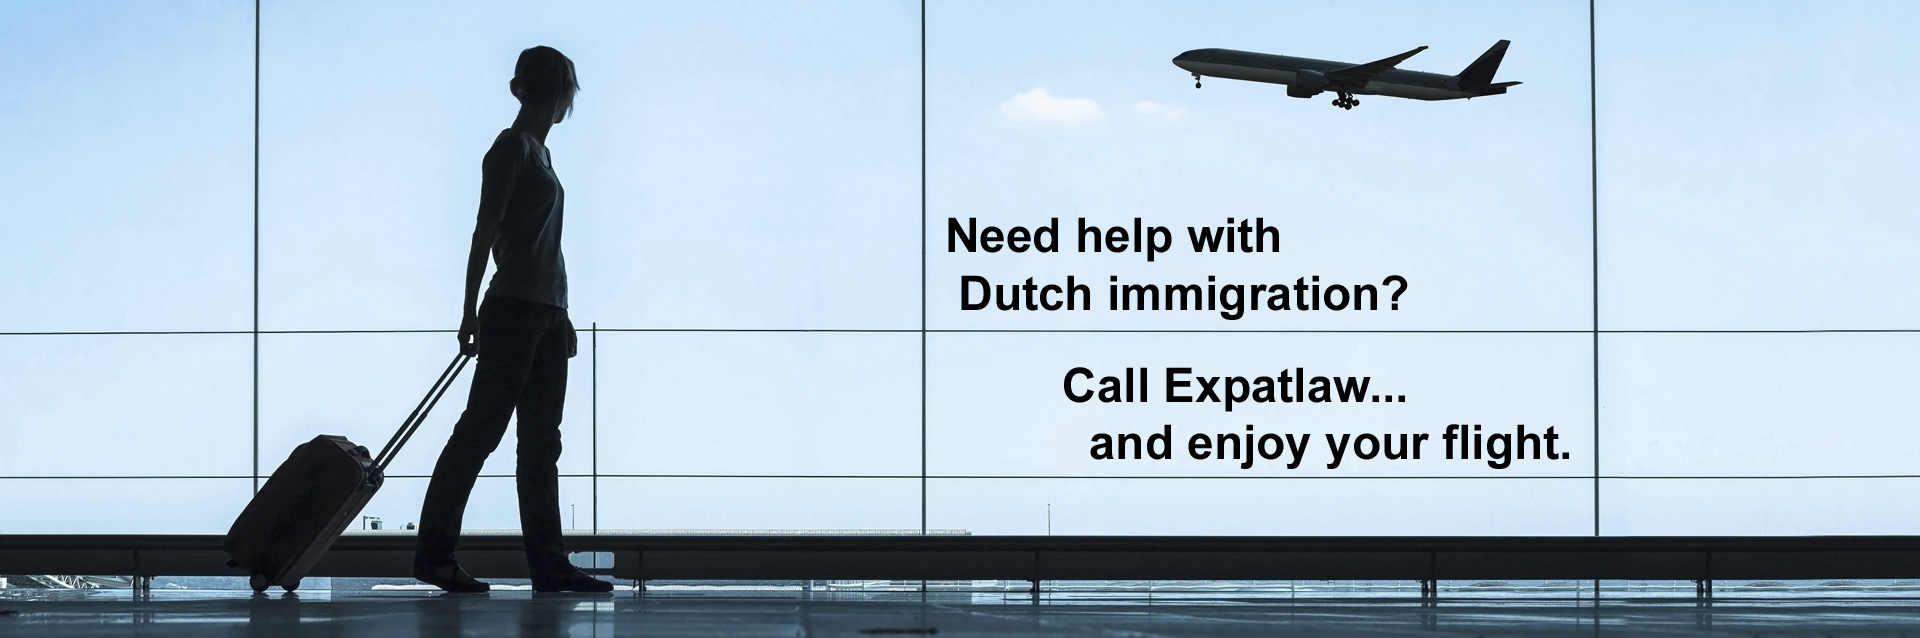 Need help with Dutch immigration? Call Expatlaw...and enjoy your flight.